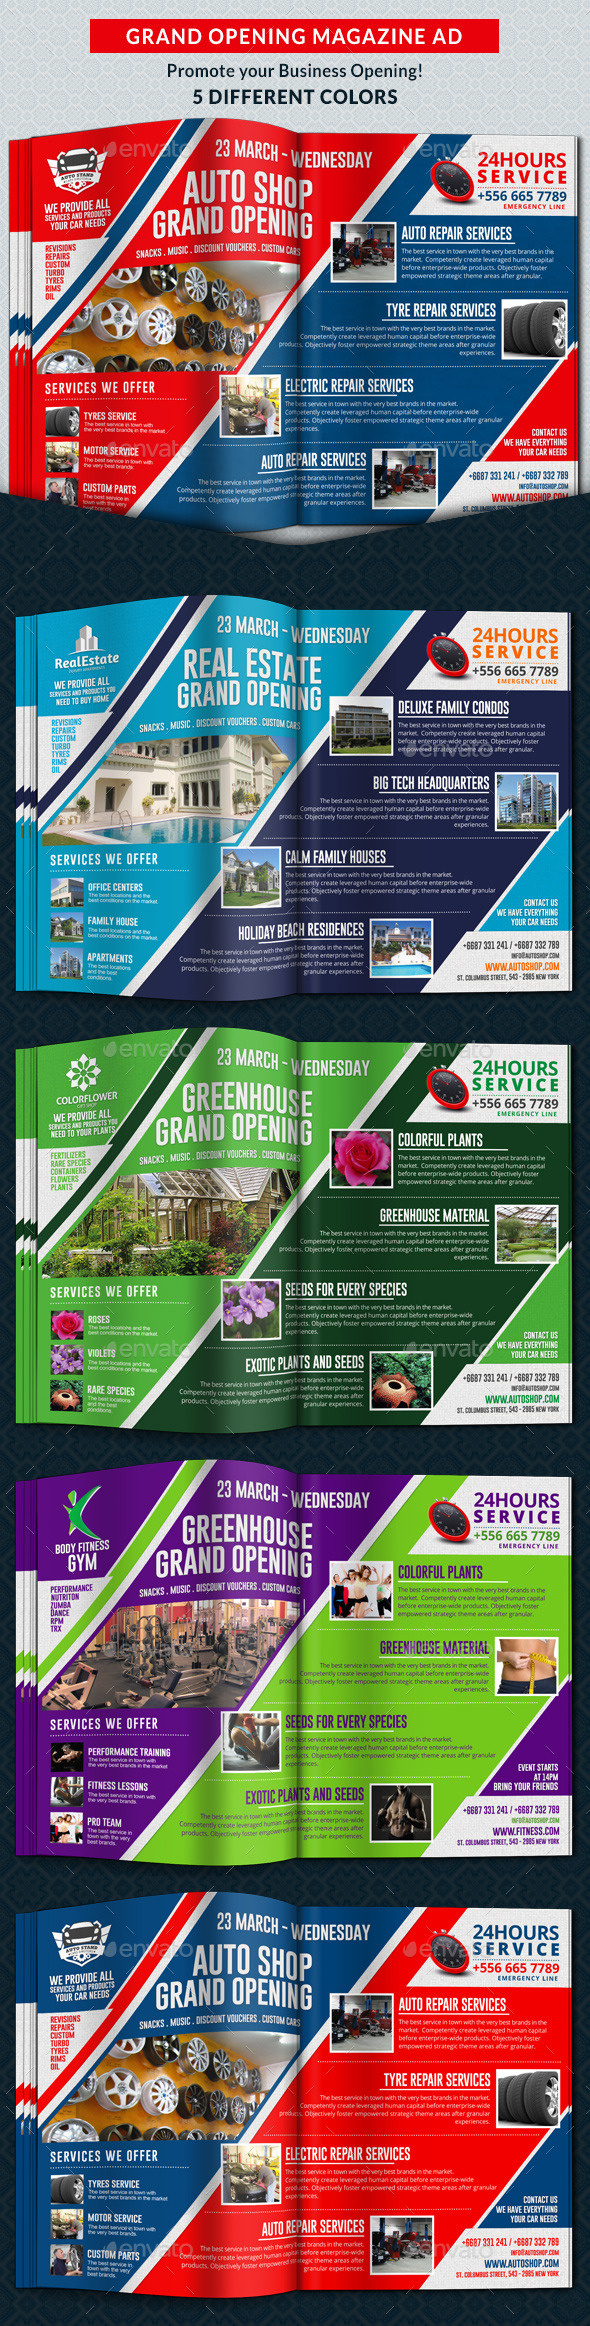 GraphicRiver Agency & Shop Grand Opening Magazine Ad 10685269